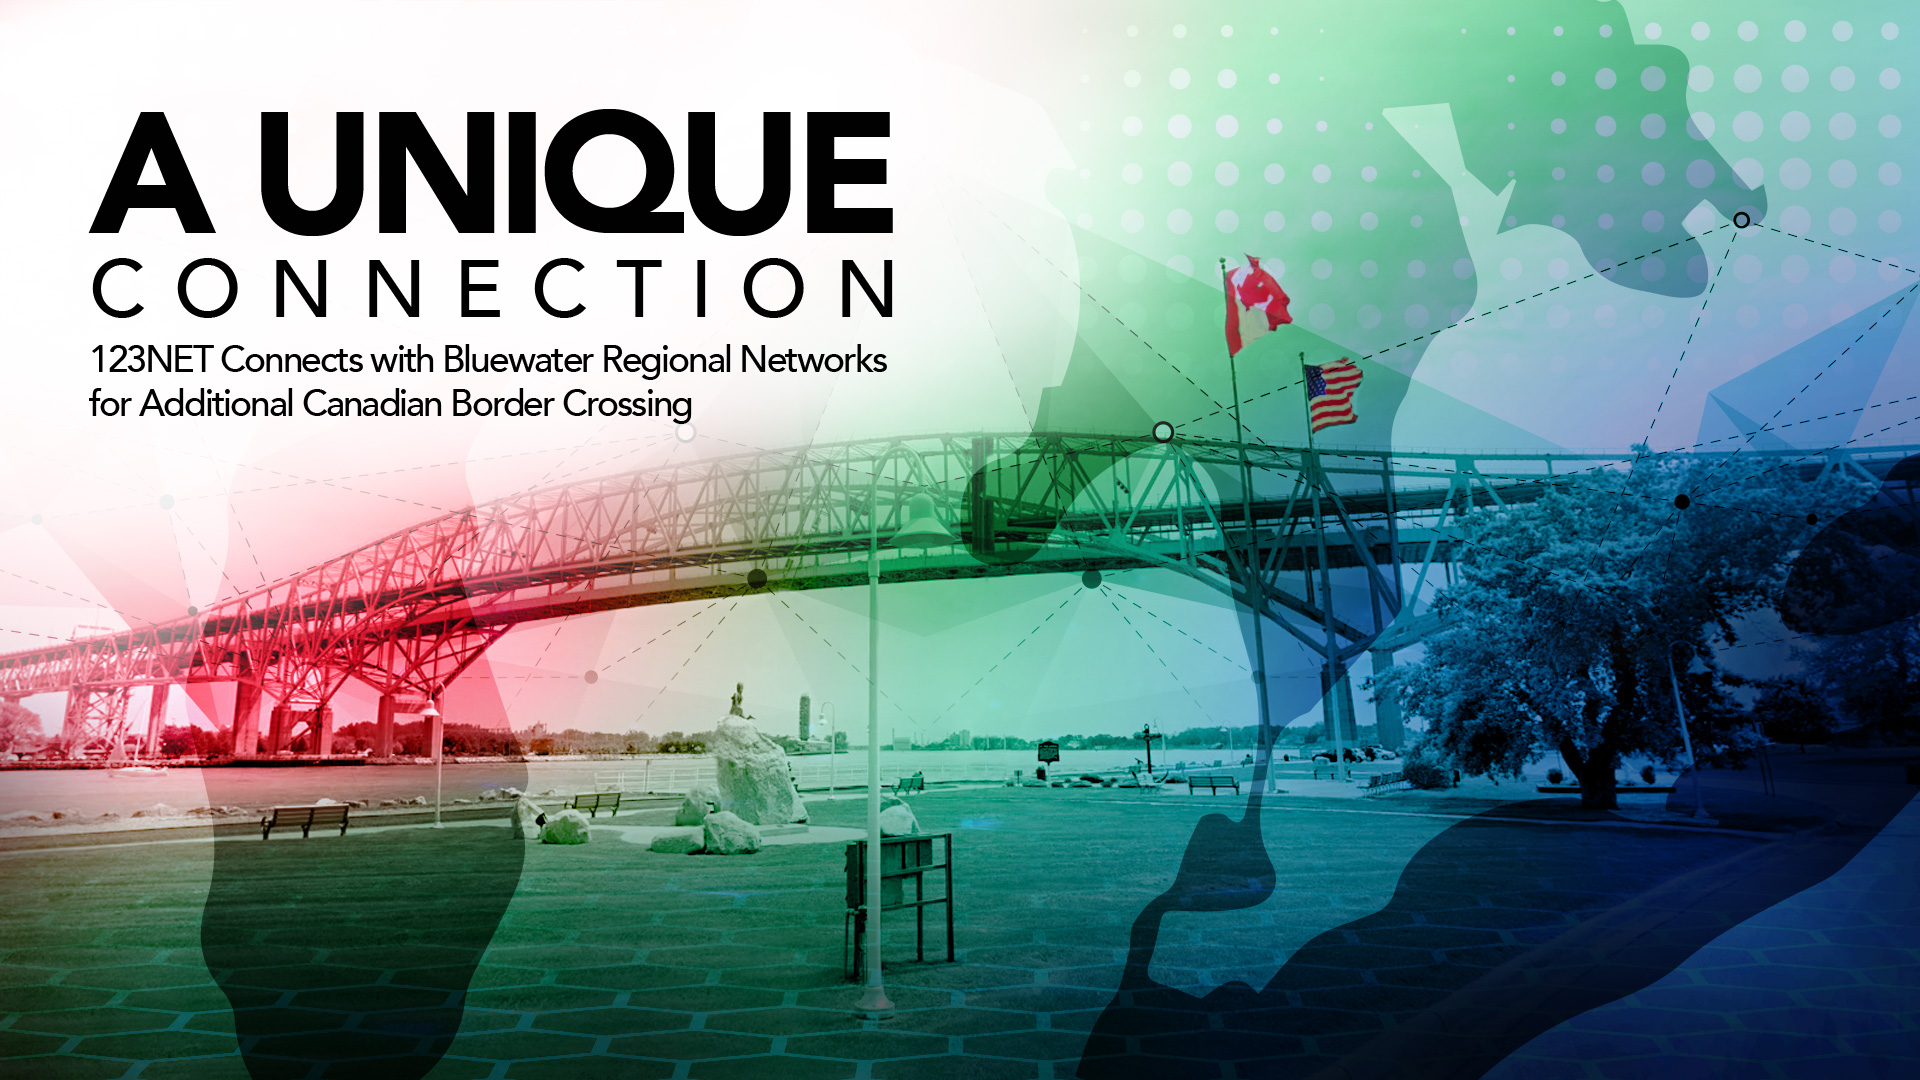 123NET Connects with Bluewater for Additional Canadian Border Crossing